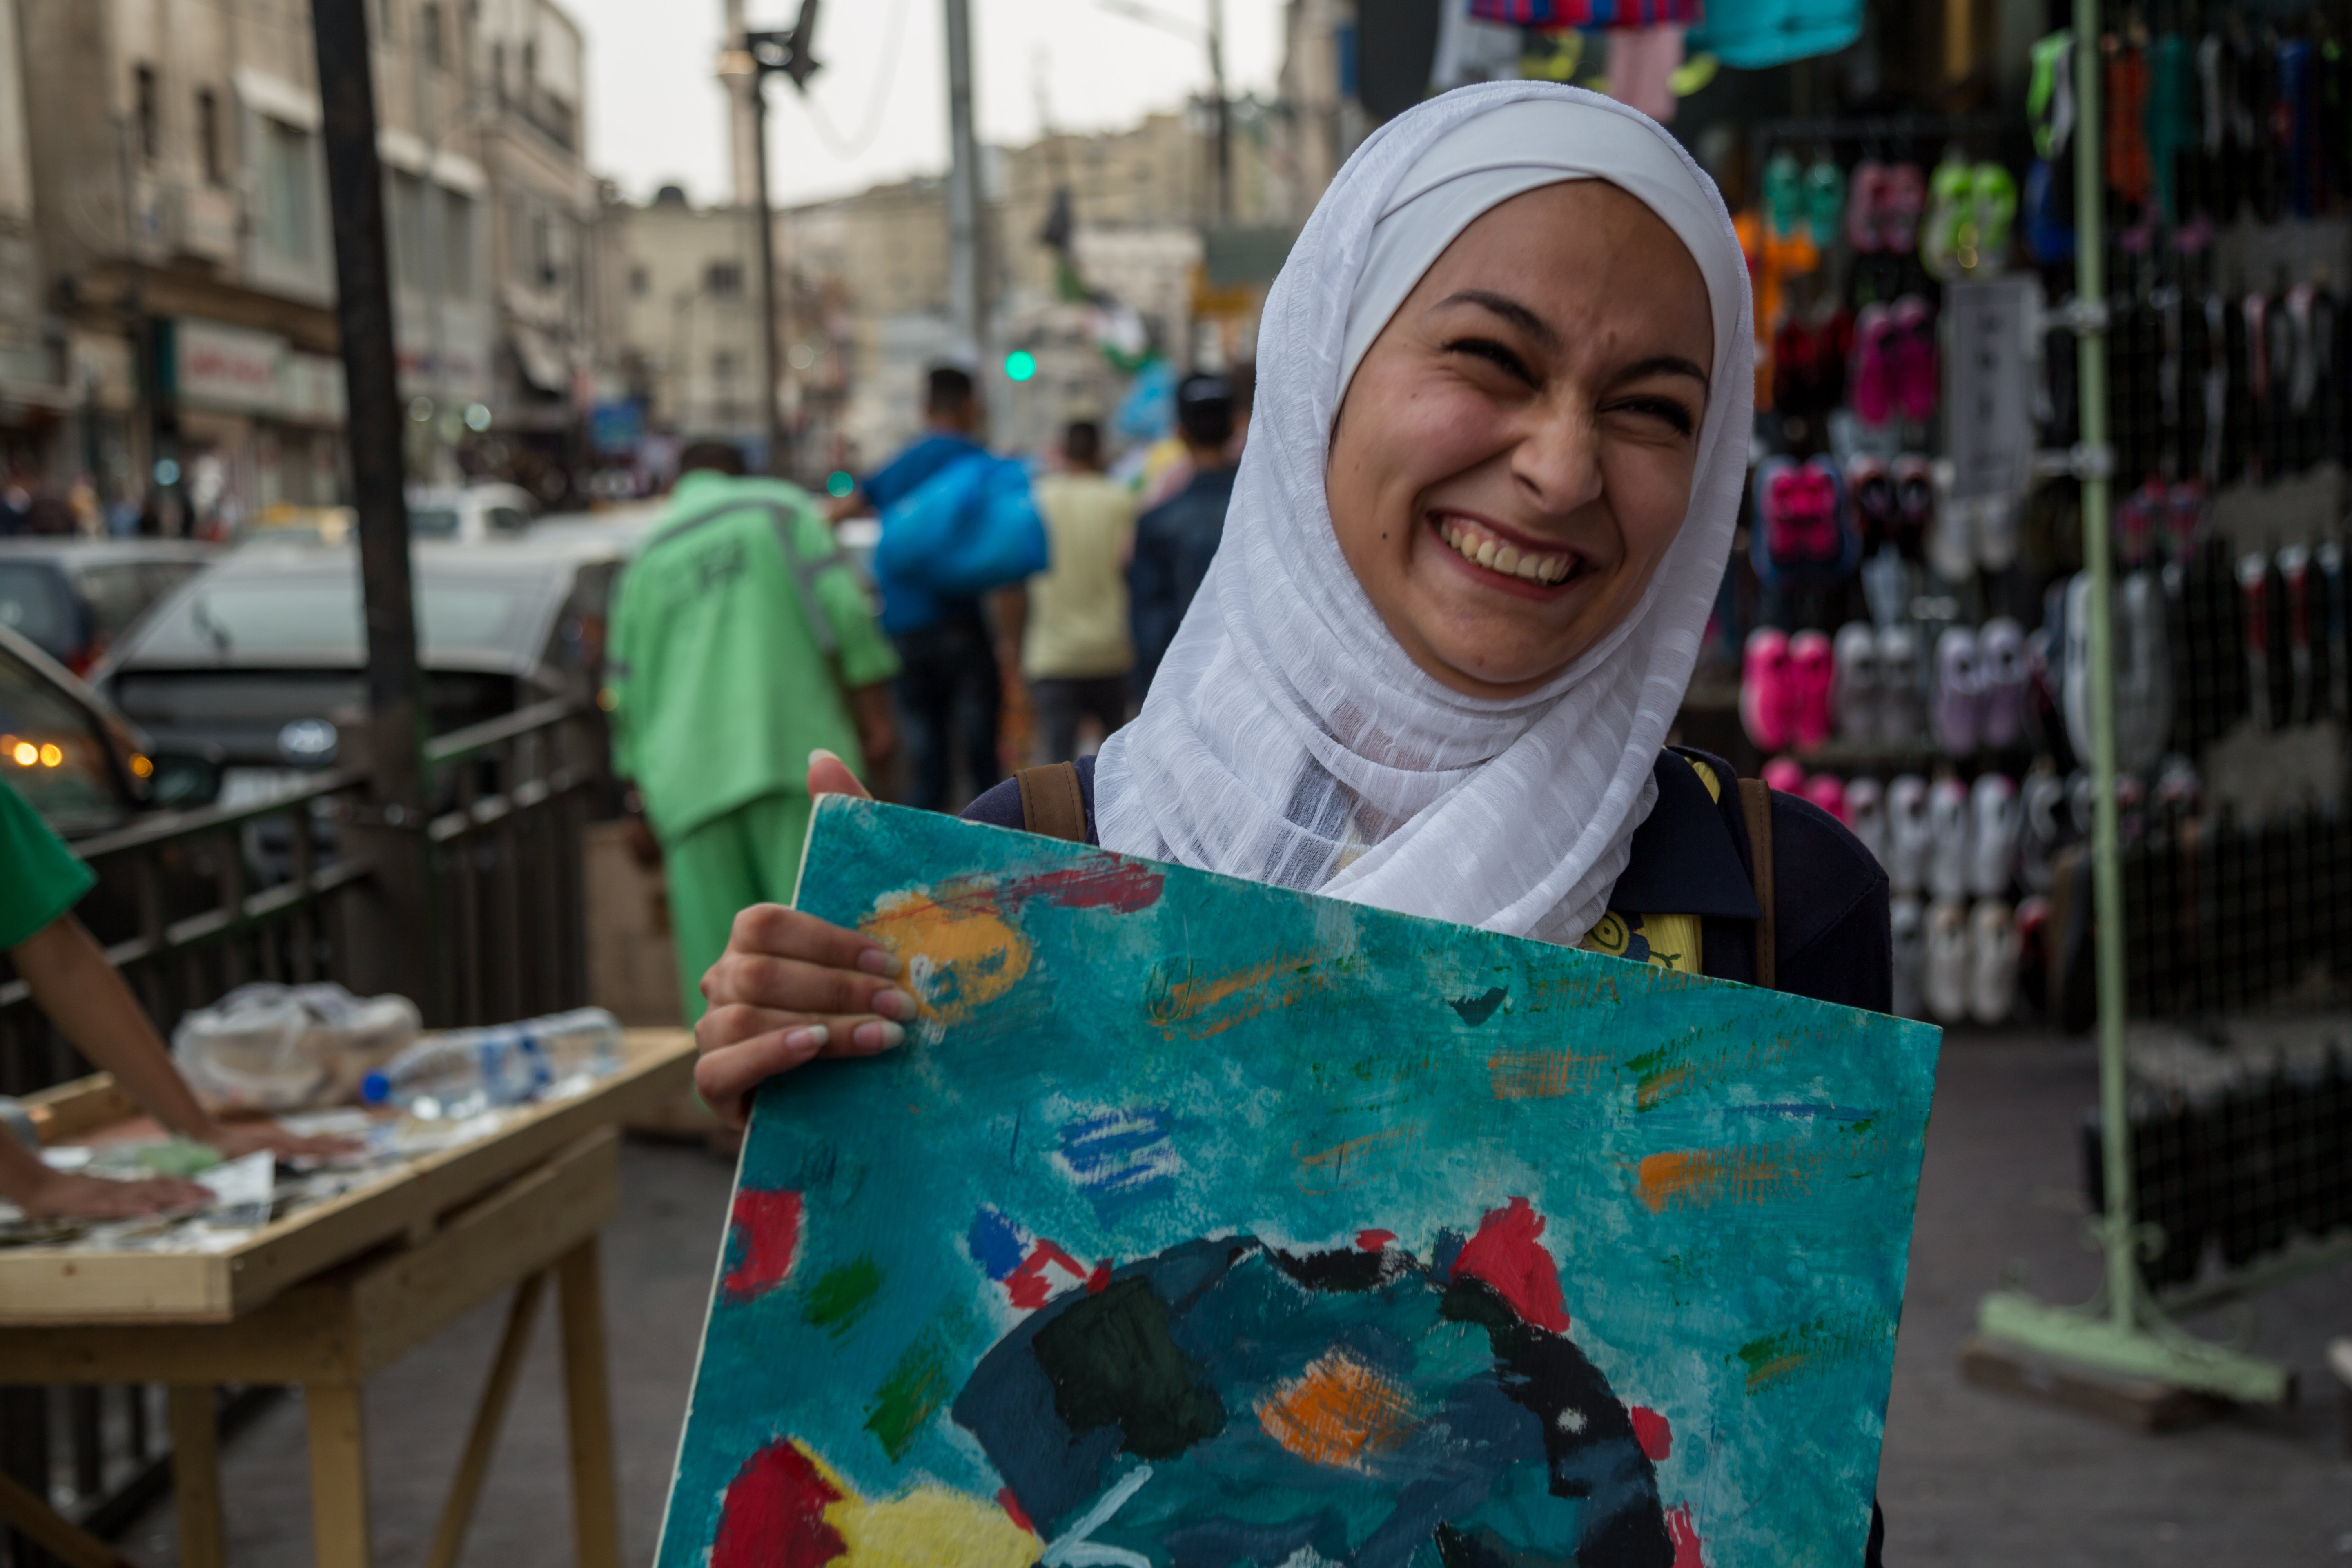 17-year-old Jordanian girl with one of her paintings